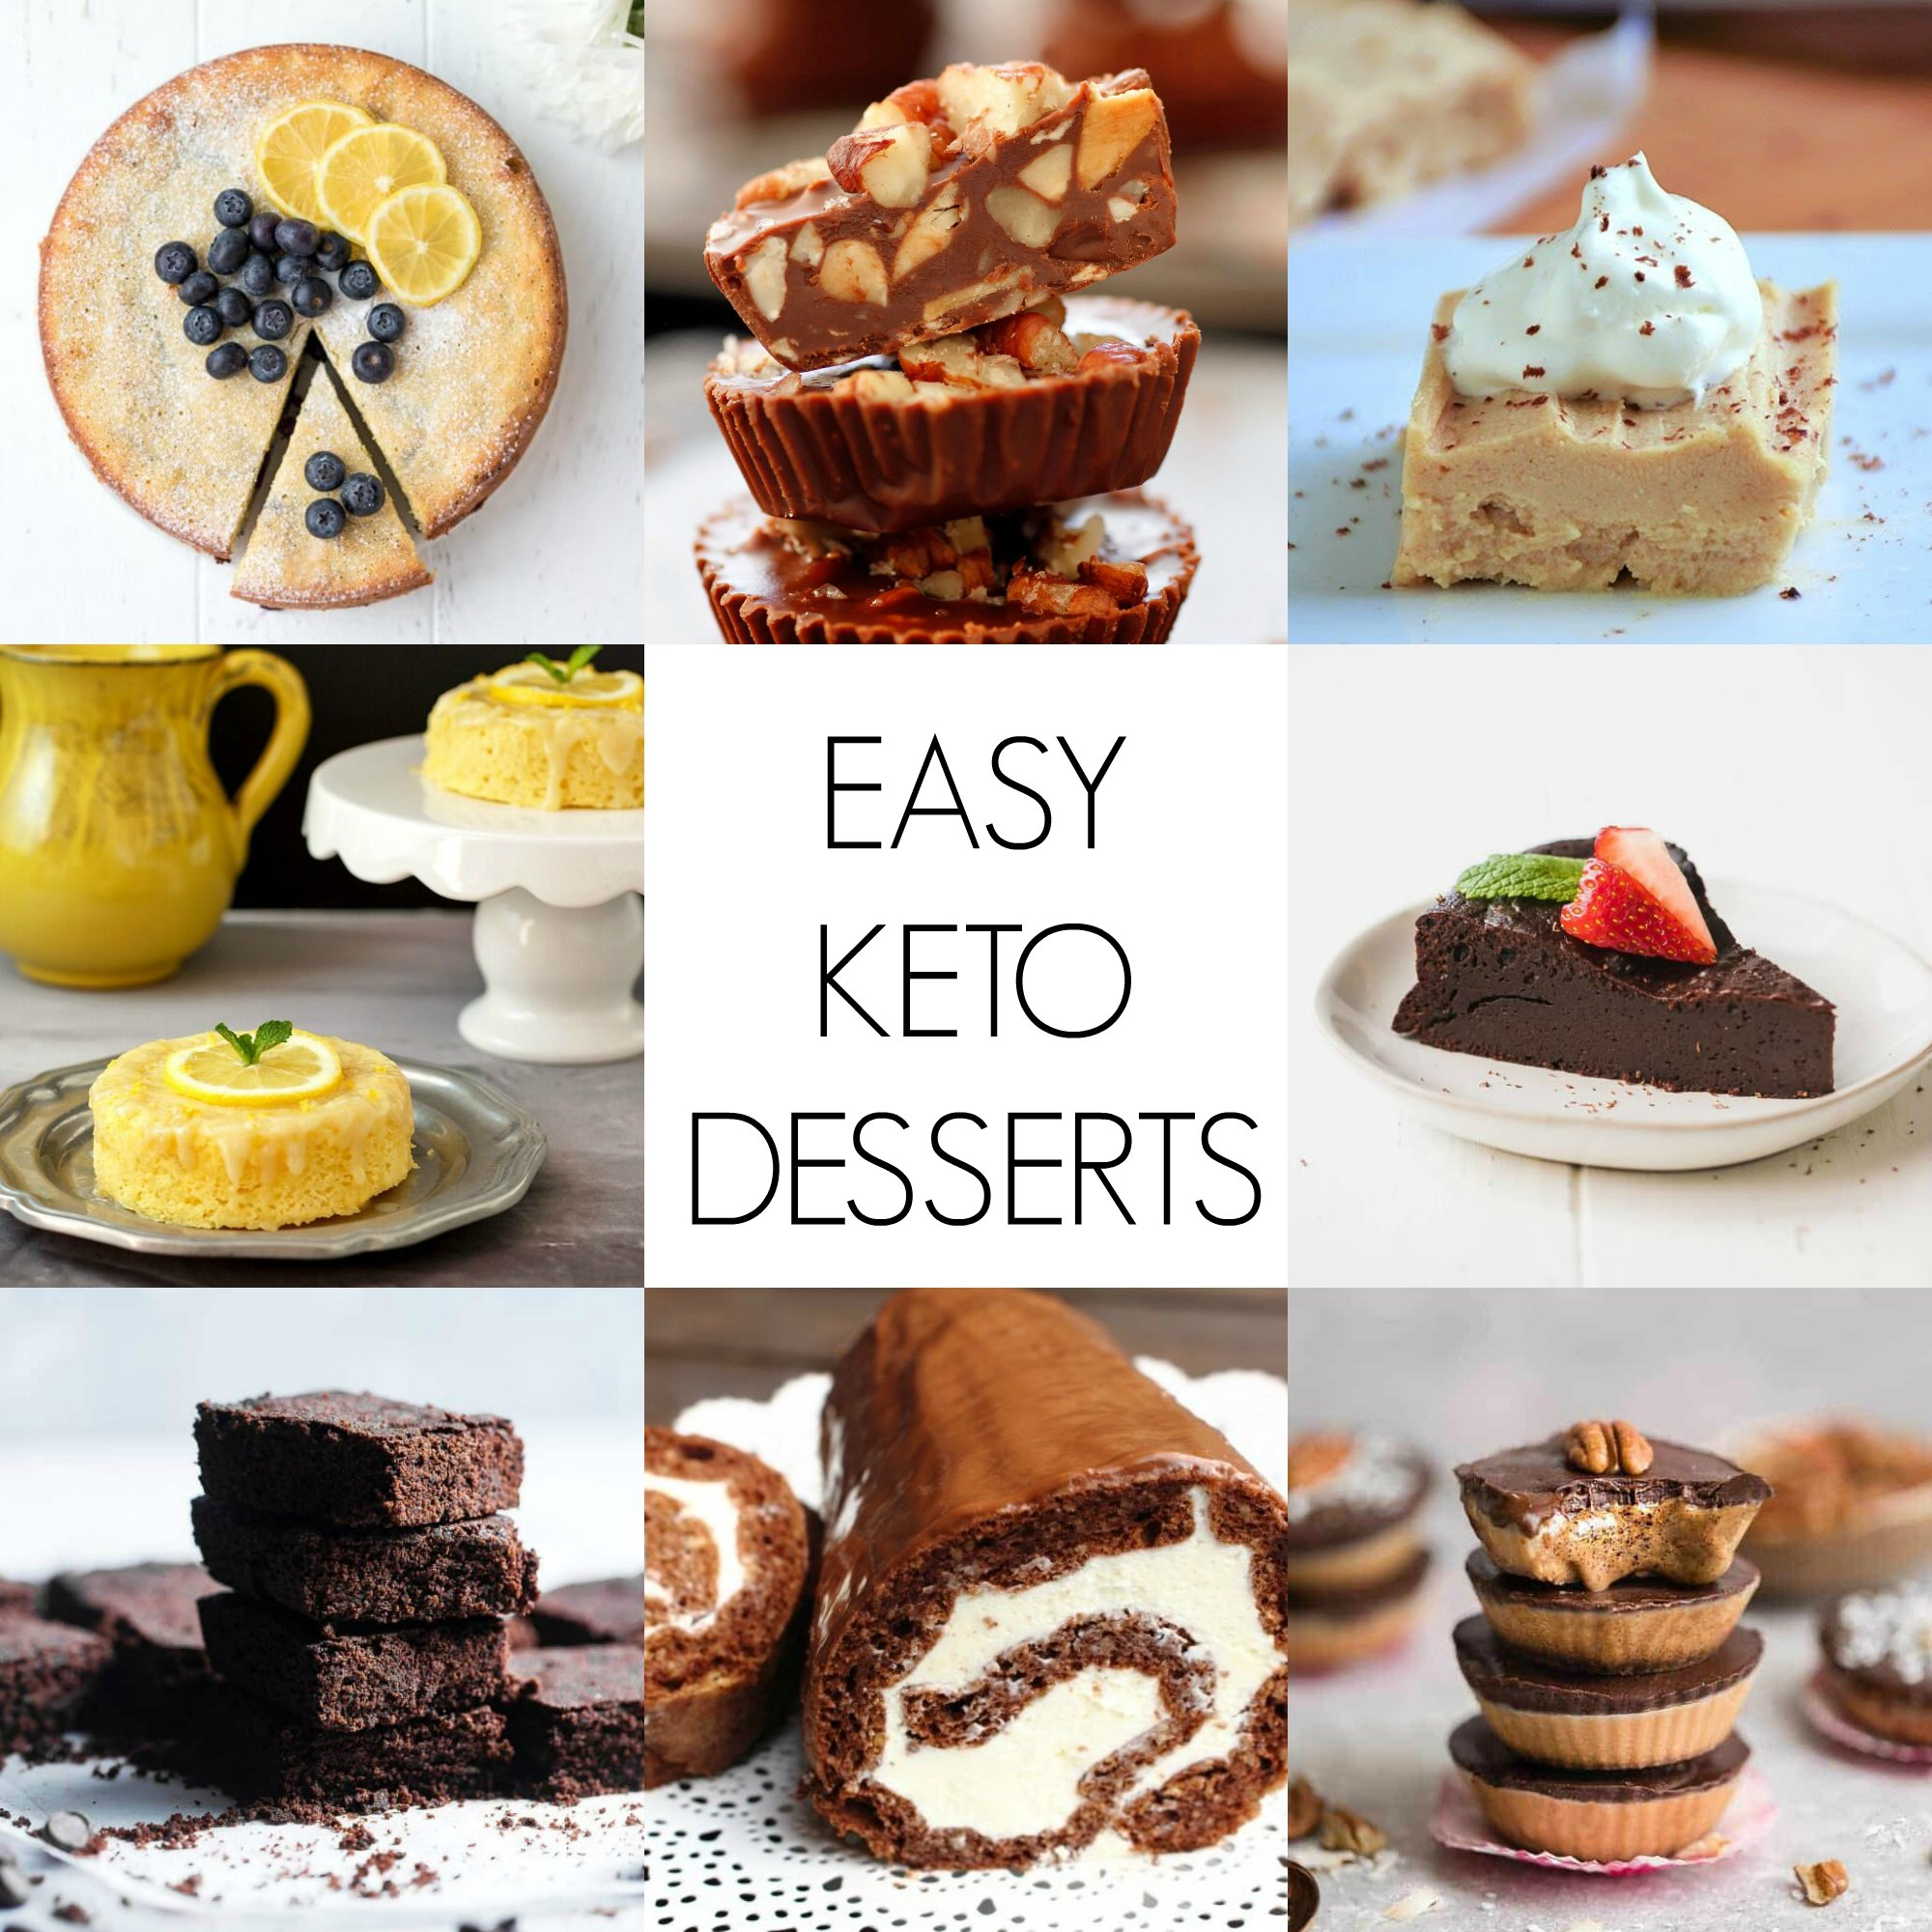 Keto Desserts Quick And Easy Keto Dessert Recipes